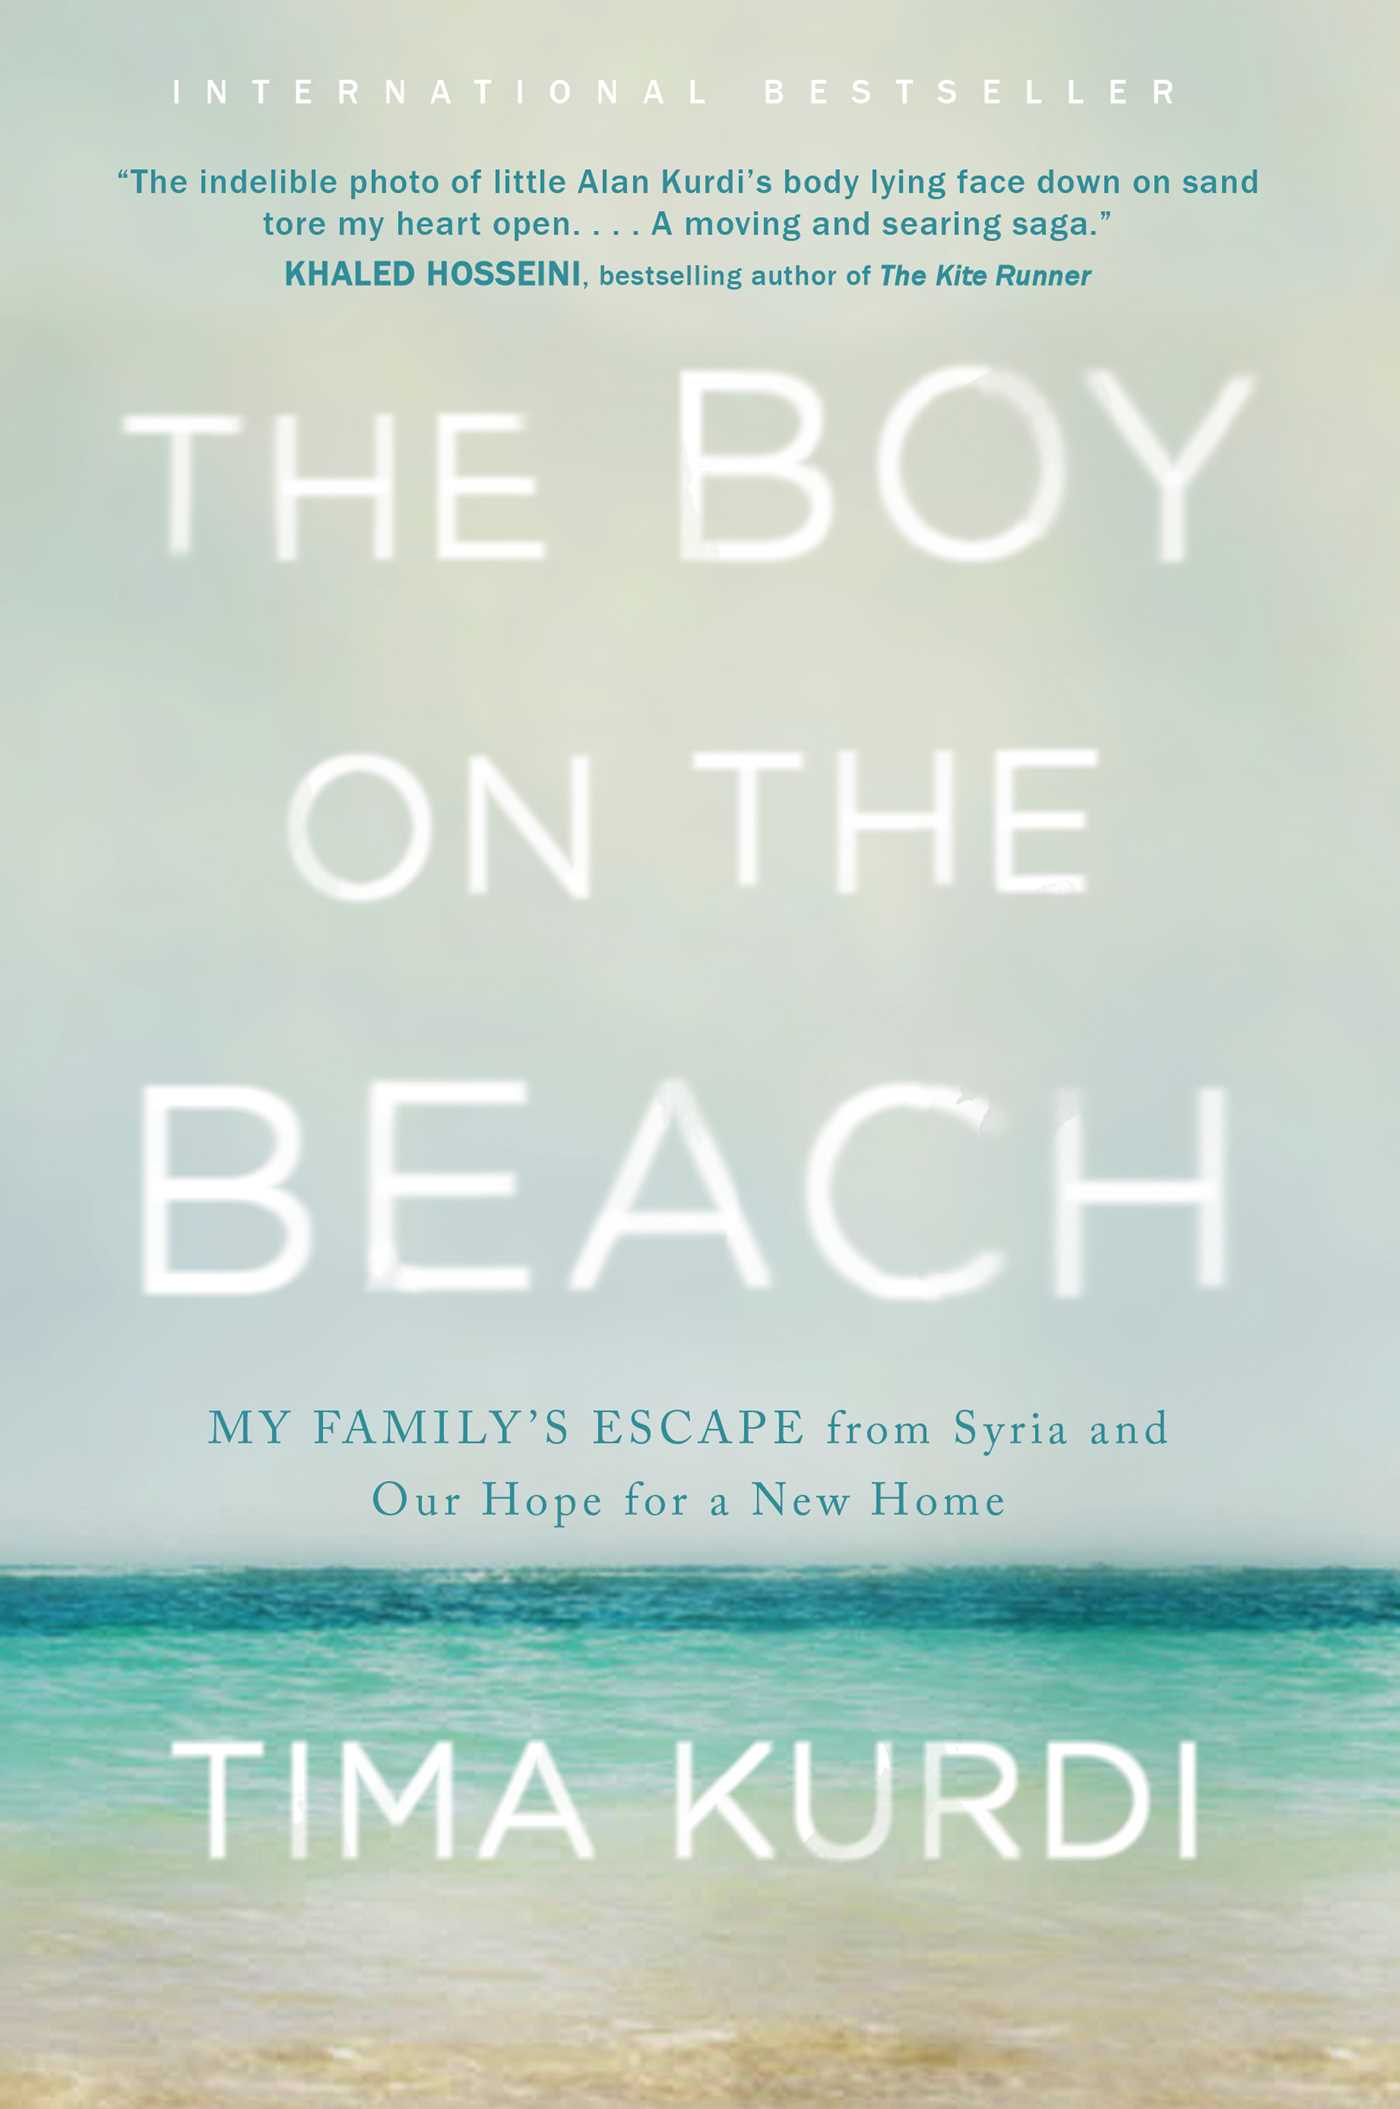 The boy on the beach 9781982108519 hr